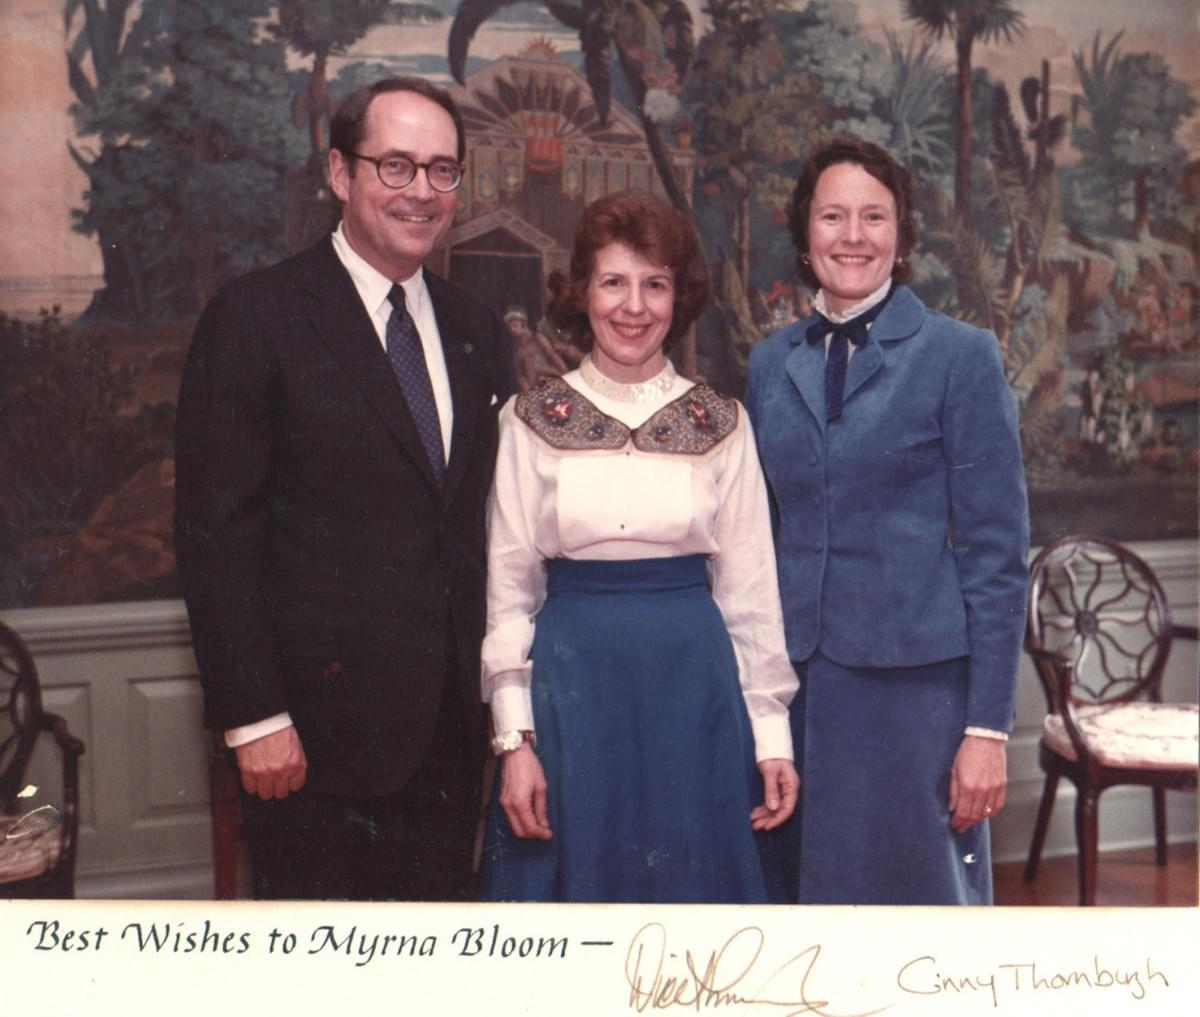 Myrna with Mrs. and Governor THornburgh